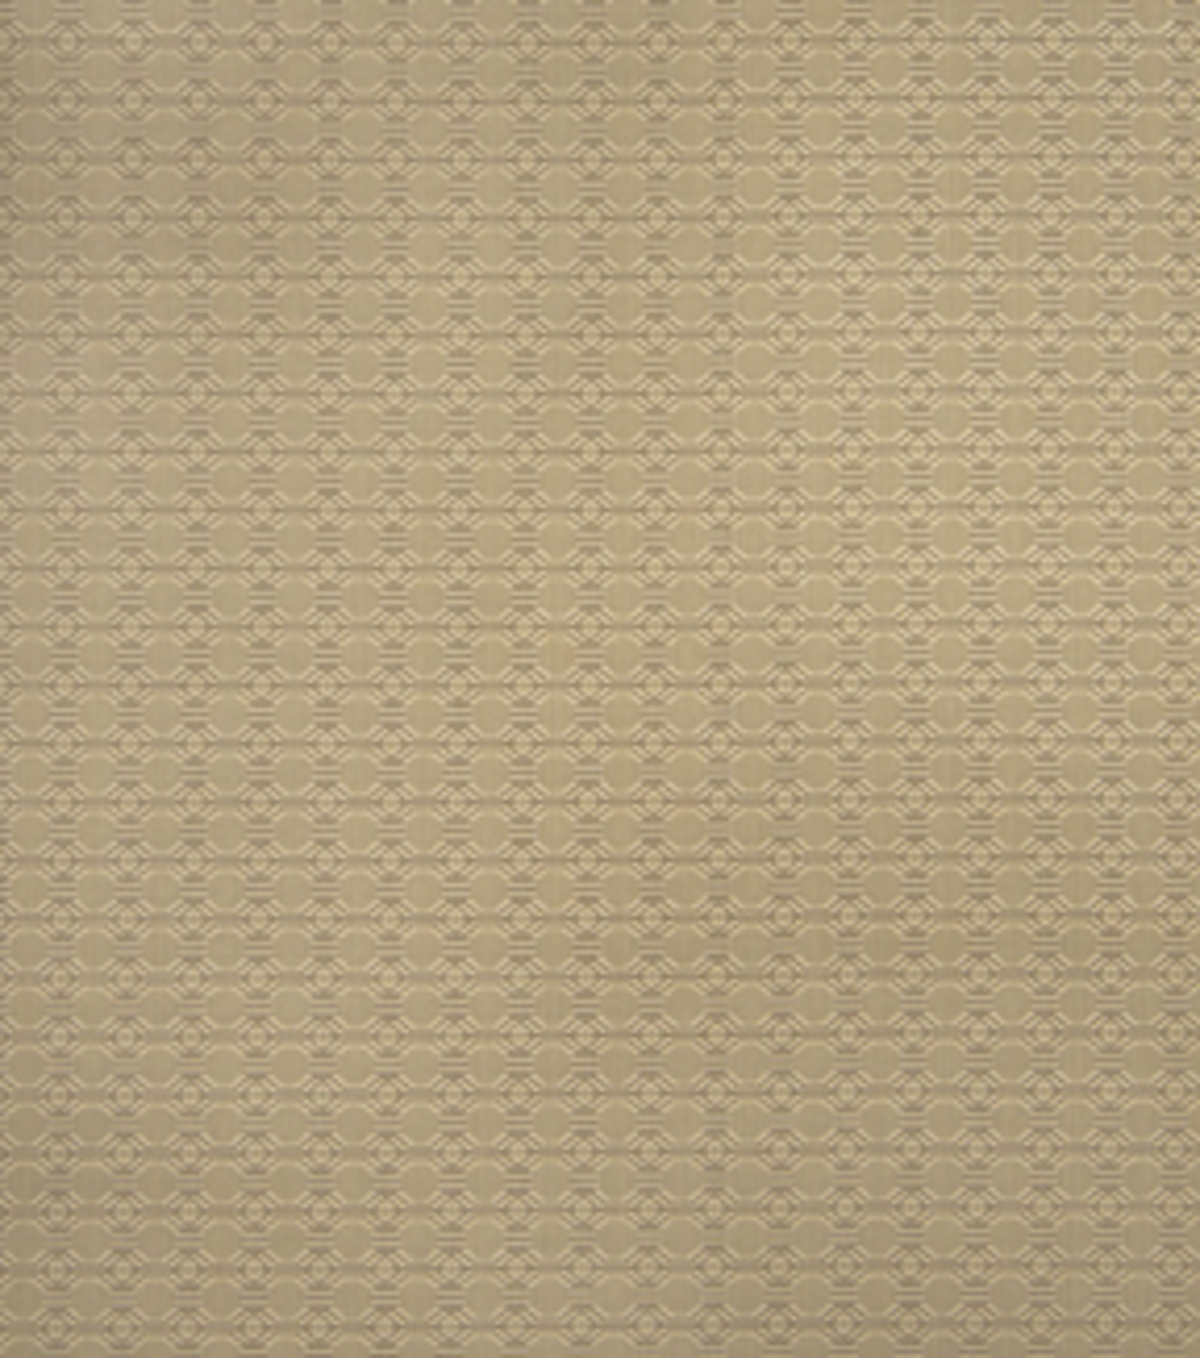 Home Decor 8\u0022x8\u0022 Fabric Swatch-Eaton Square Norris Taupe